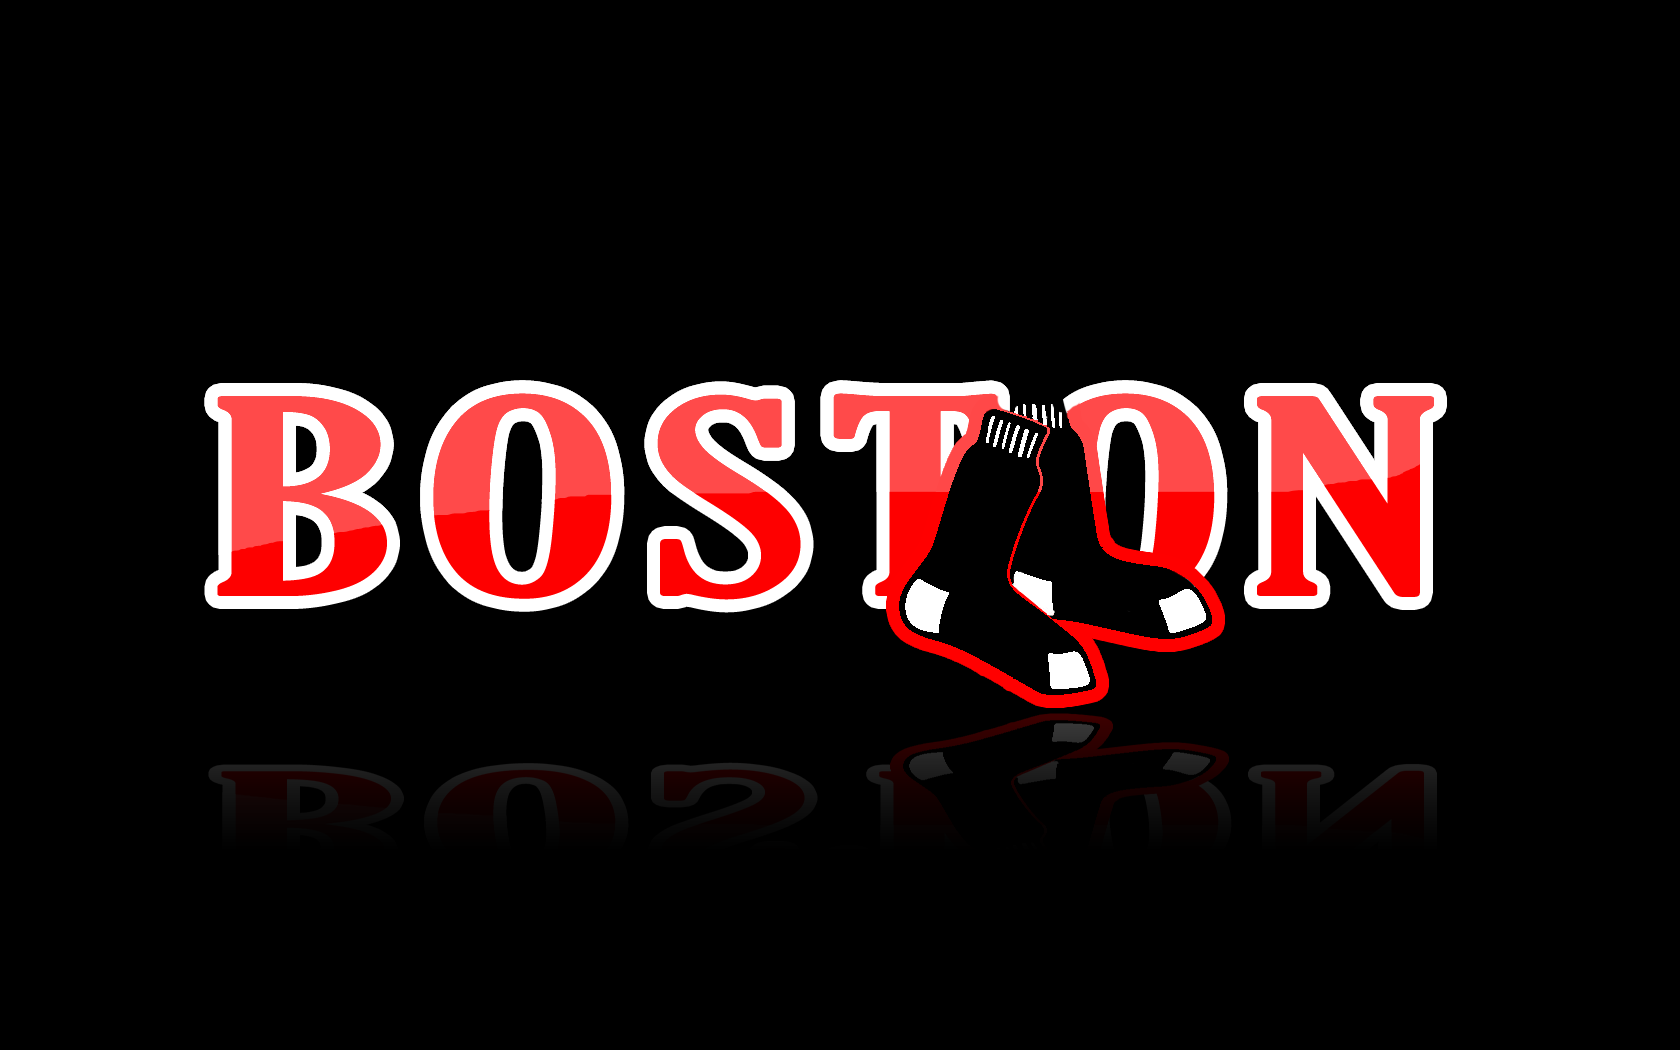 The Ultimate Boston Red Sox Boston red sox wallpapers - Wallpaper Bit